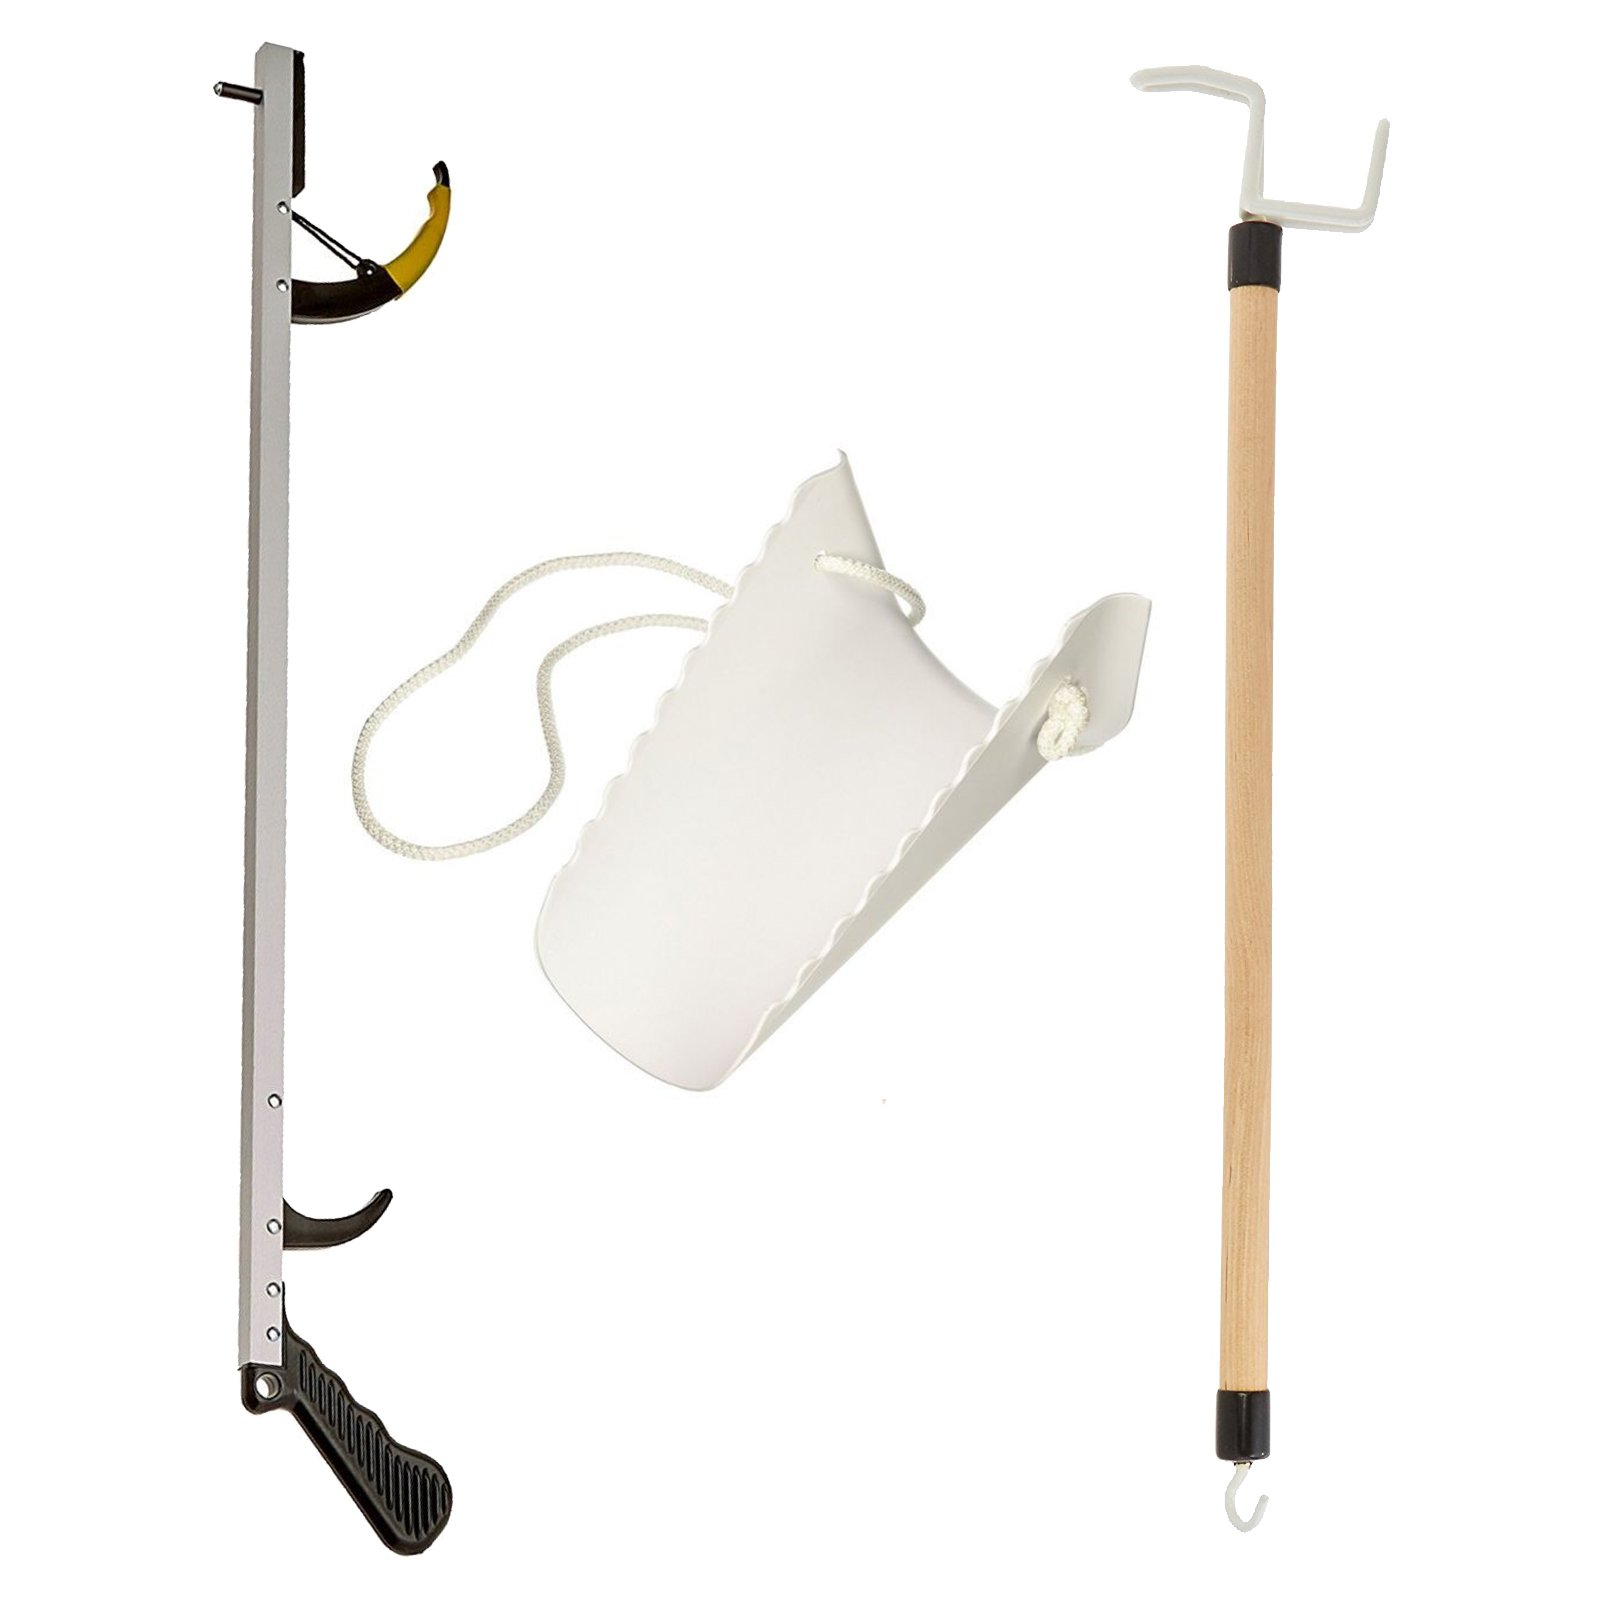 Sammons Preston Assistive Device Kit 6, Includes 26'' SPR Reacher, Compression Stocking Aid & 26'' Dressing Stick, Adaptive Independent Daily Living Aid for Those with Limited Reaching Ability